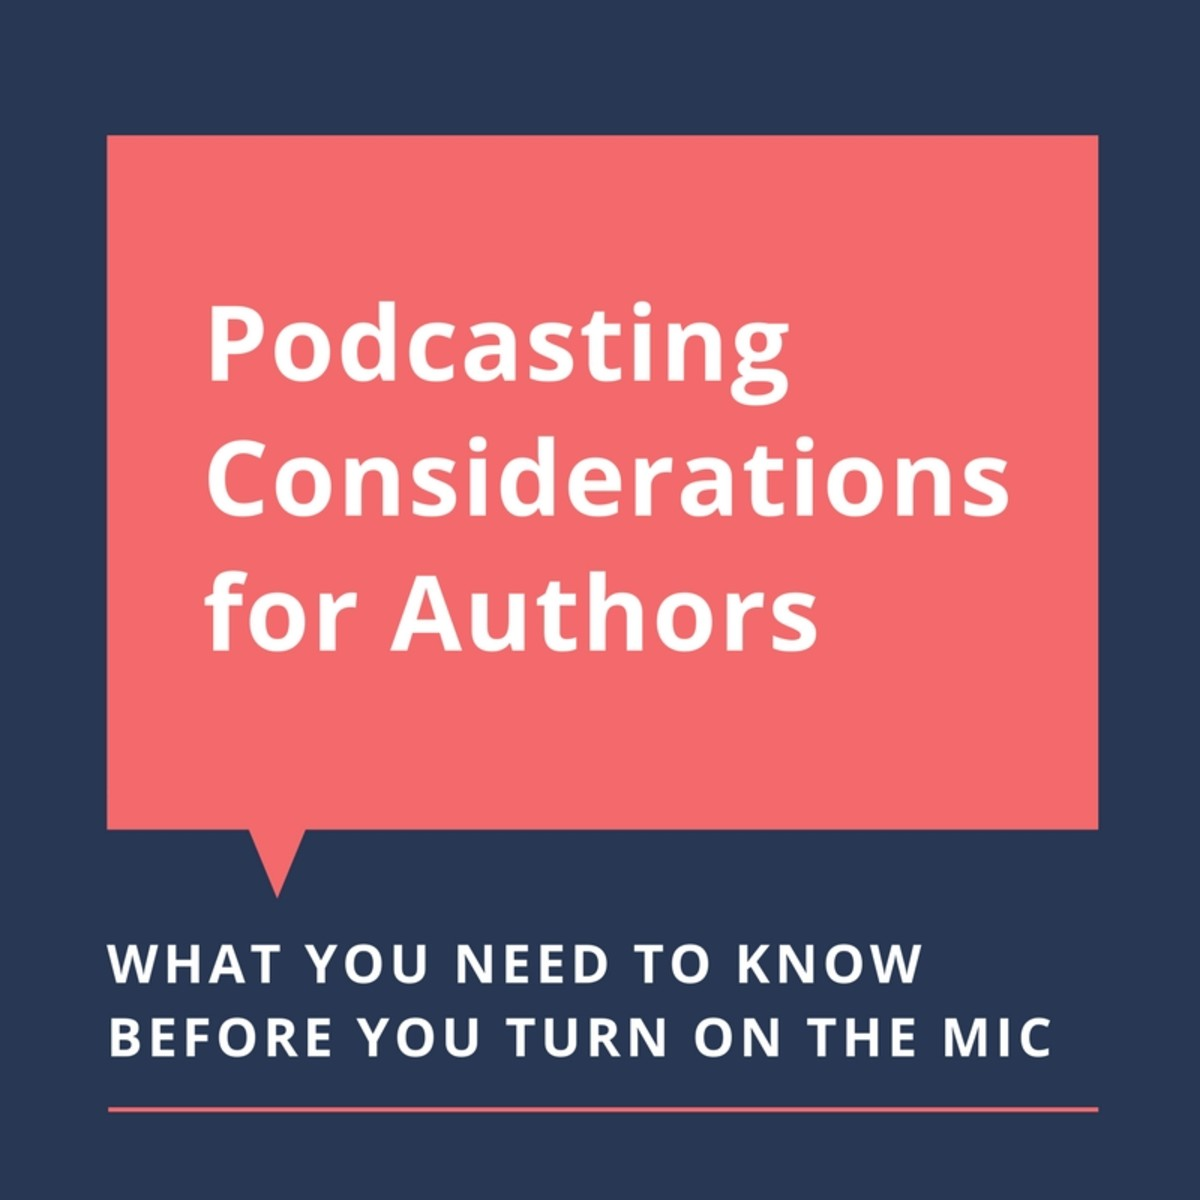 Some things to consider before podcasting.